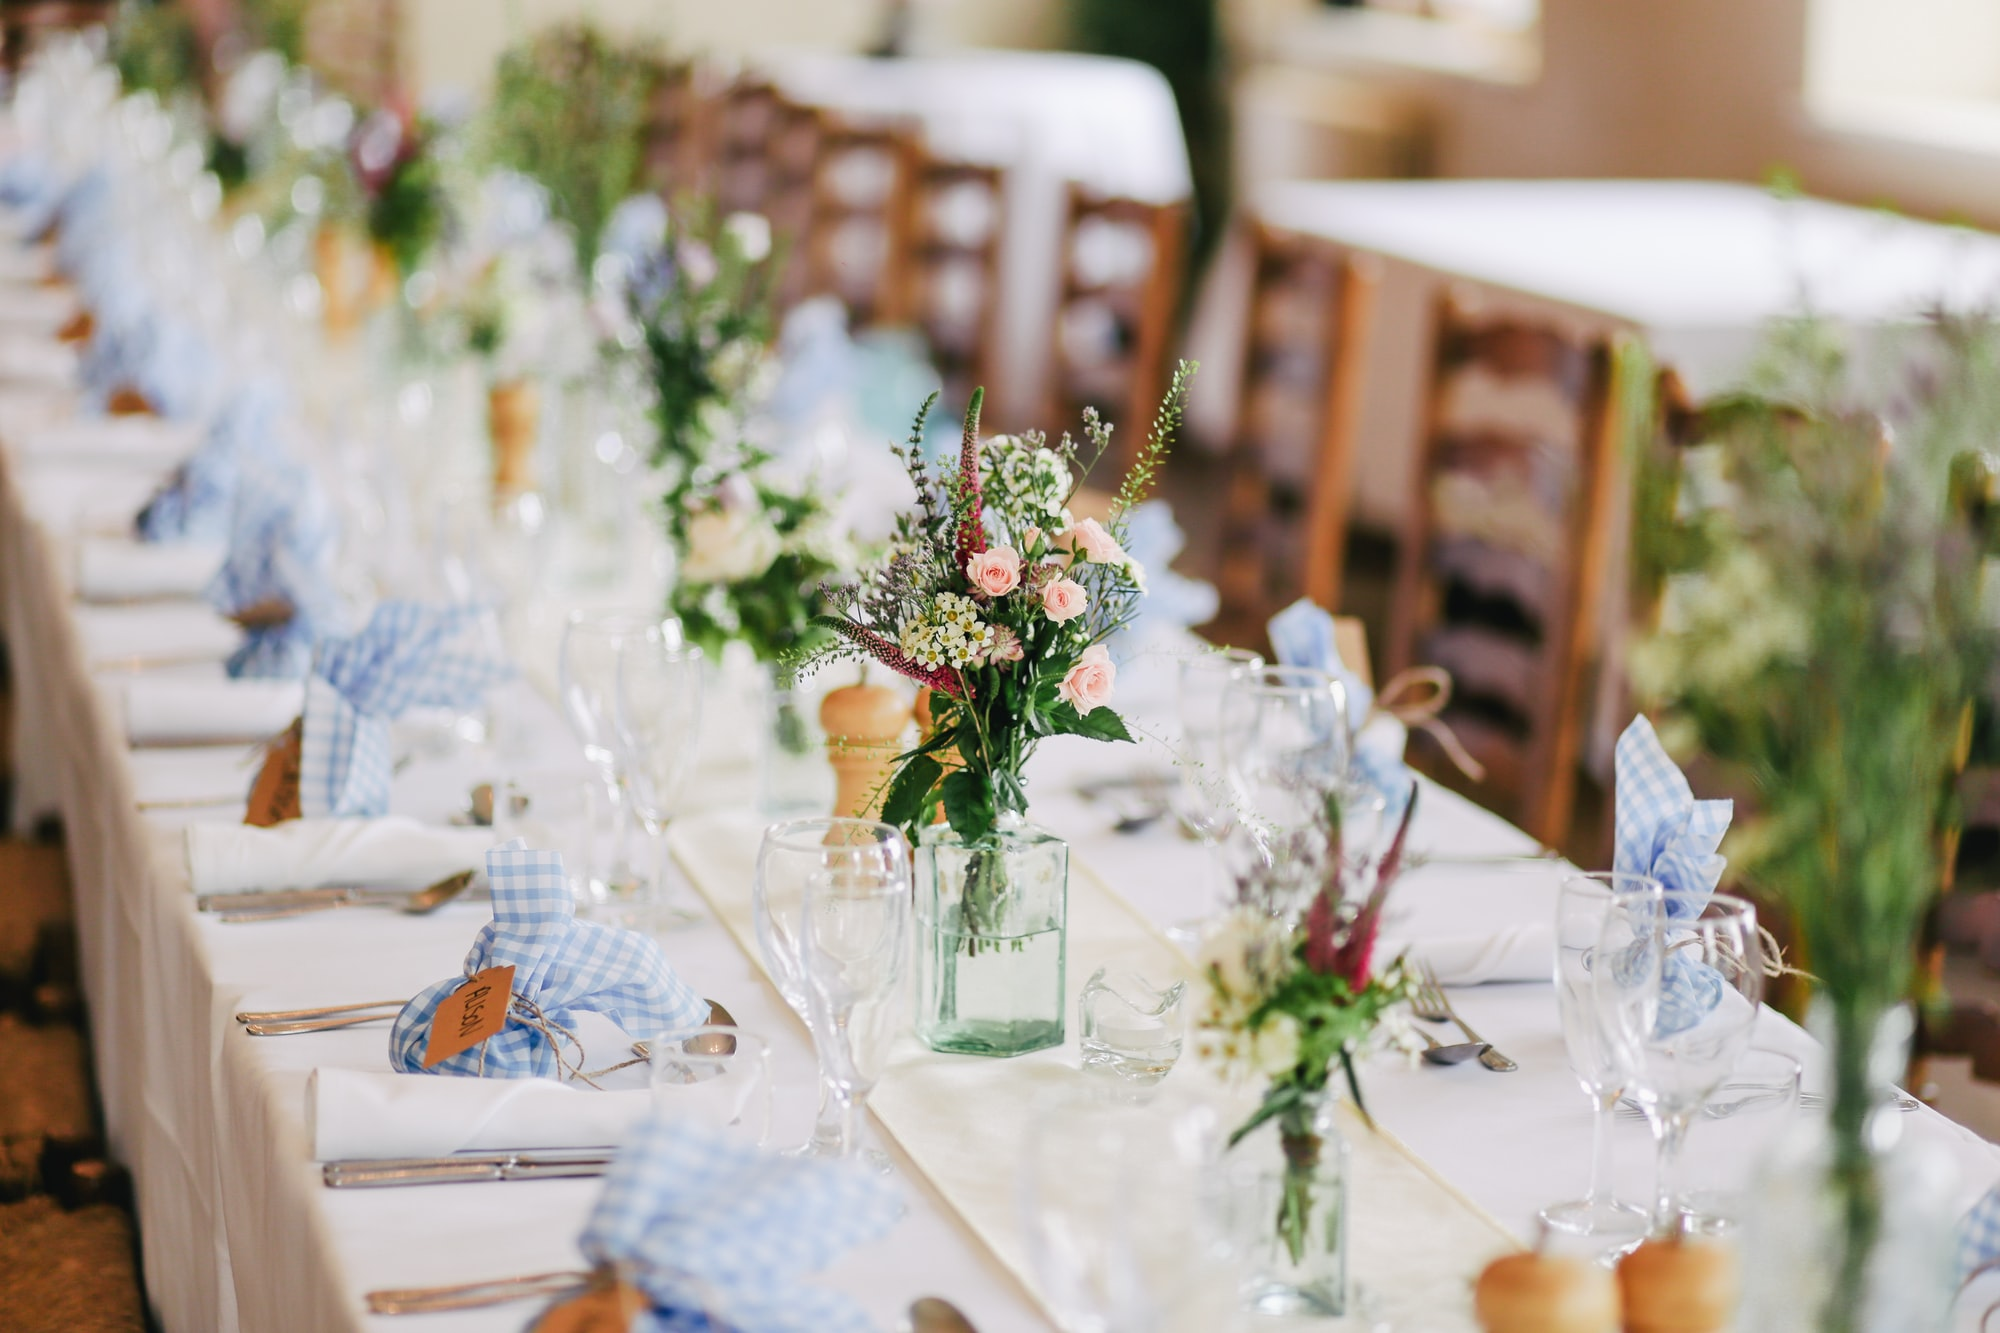 Top Wedding Flower Trends and Ideas for 2020